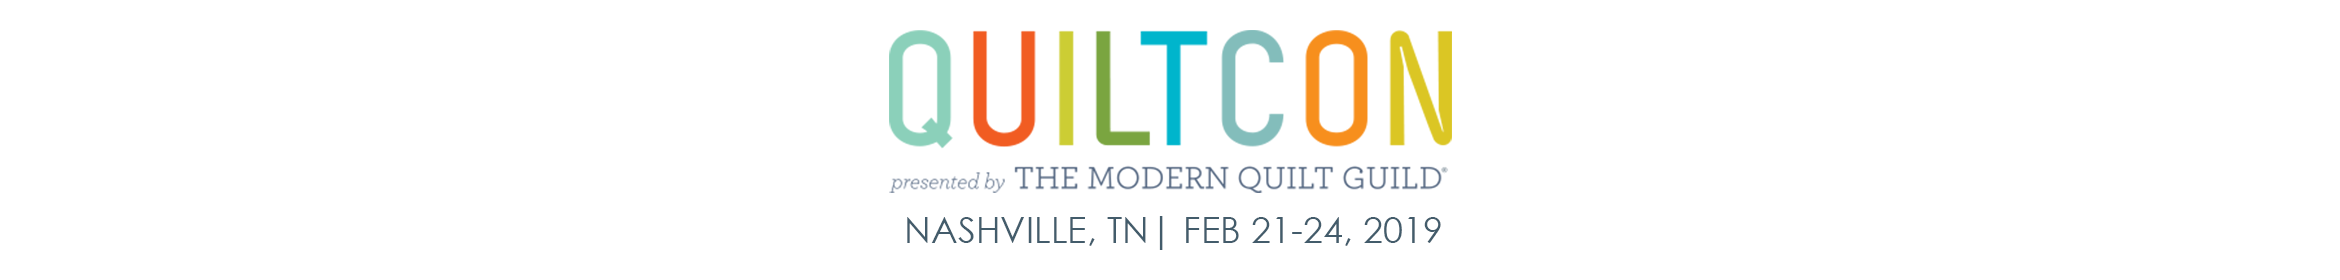 QuiltCon 2019 Main banner